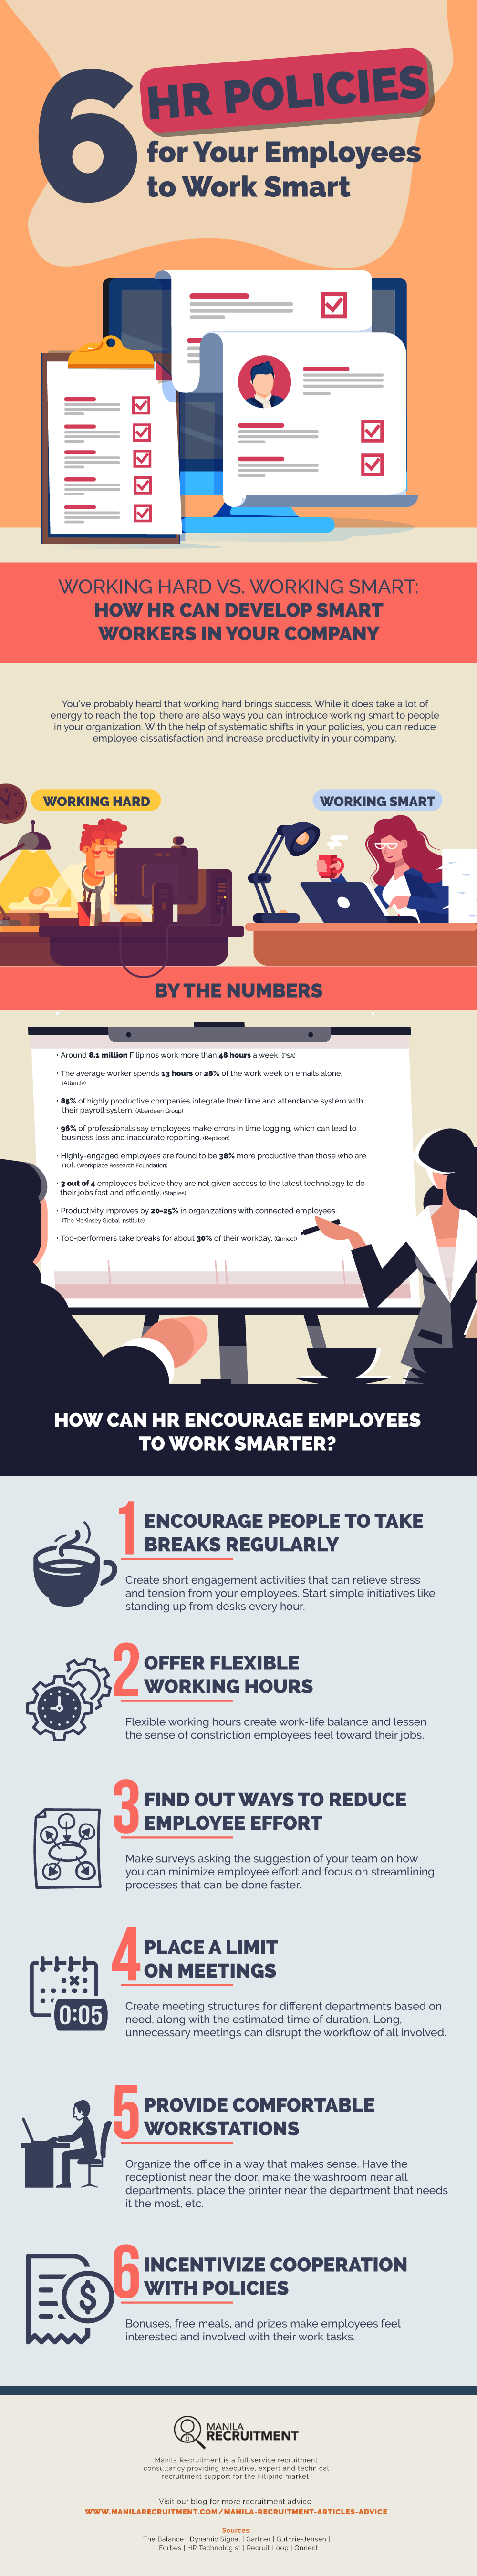 6 HR Policies for Your Employees to Work Smart Infographic